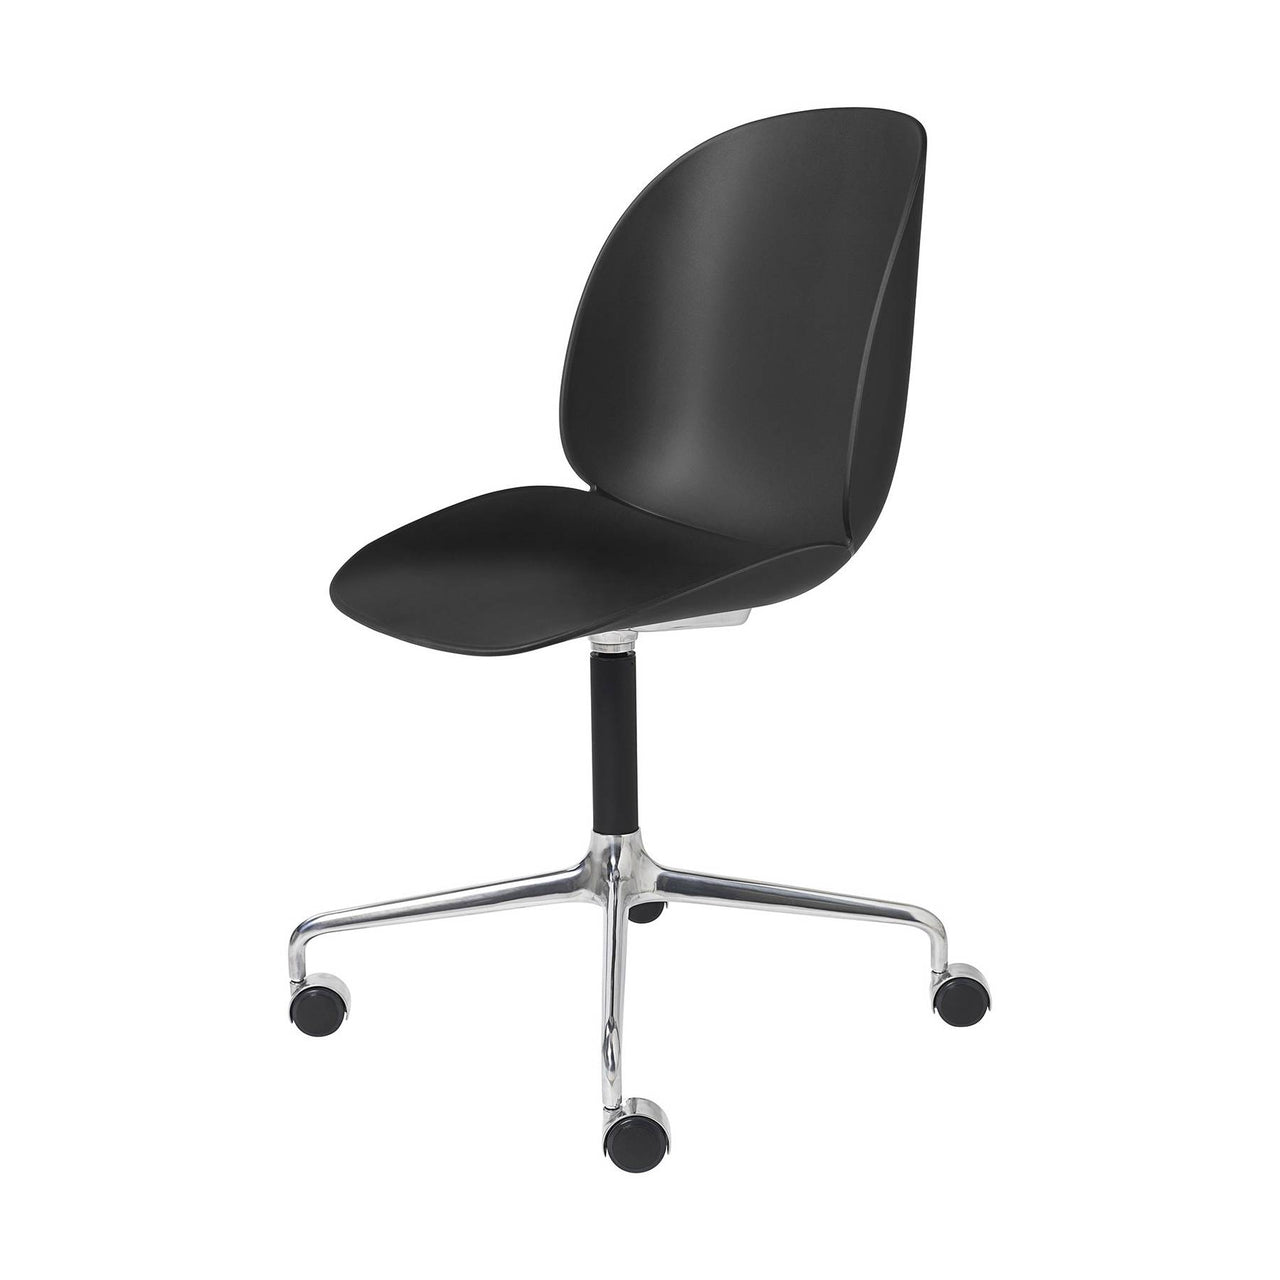 Beetle Meeting Chair: 4-Star Swivel Base With Castors: Black + Polished Aluminum + Black Matte Base